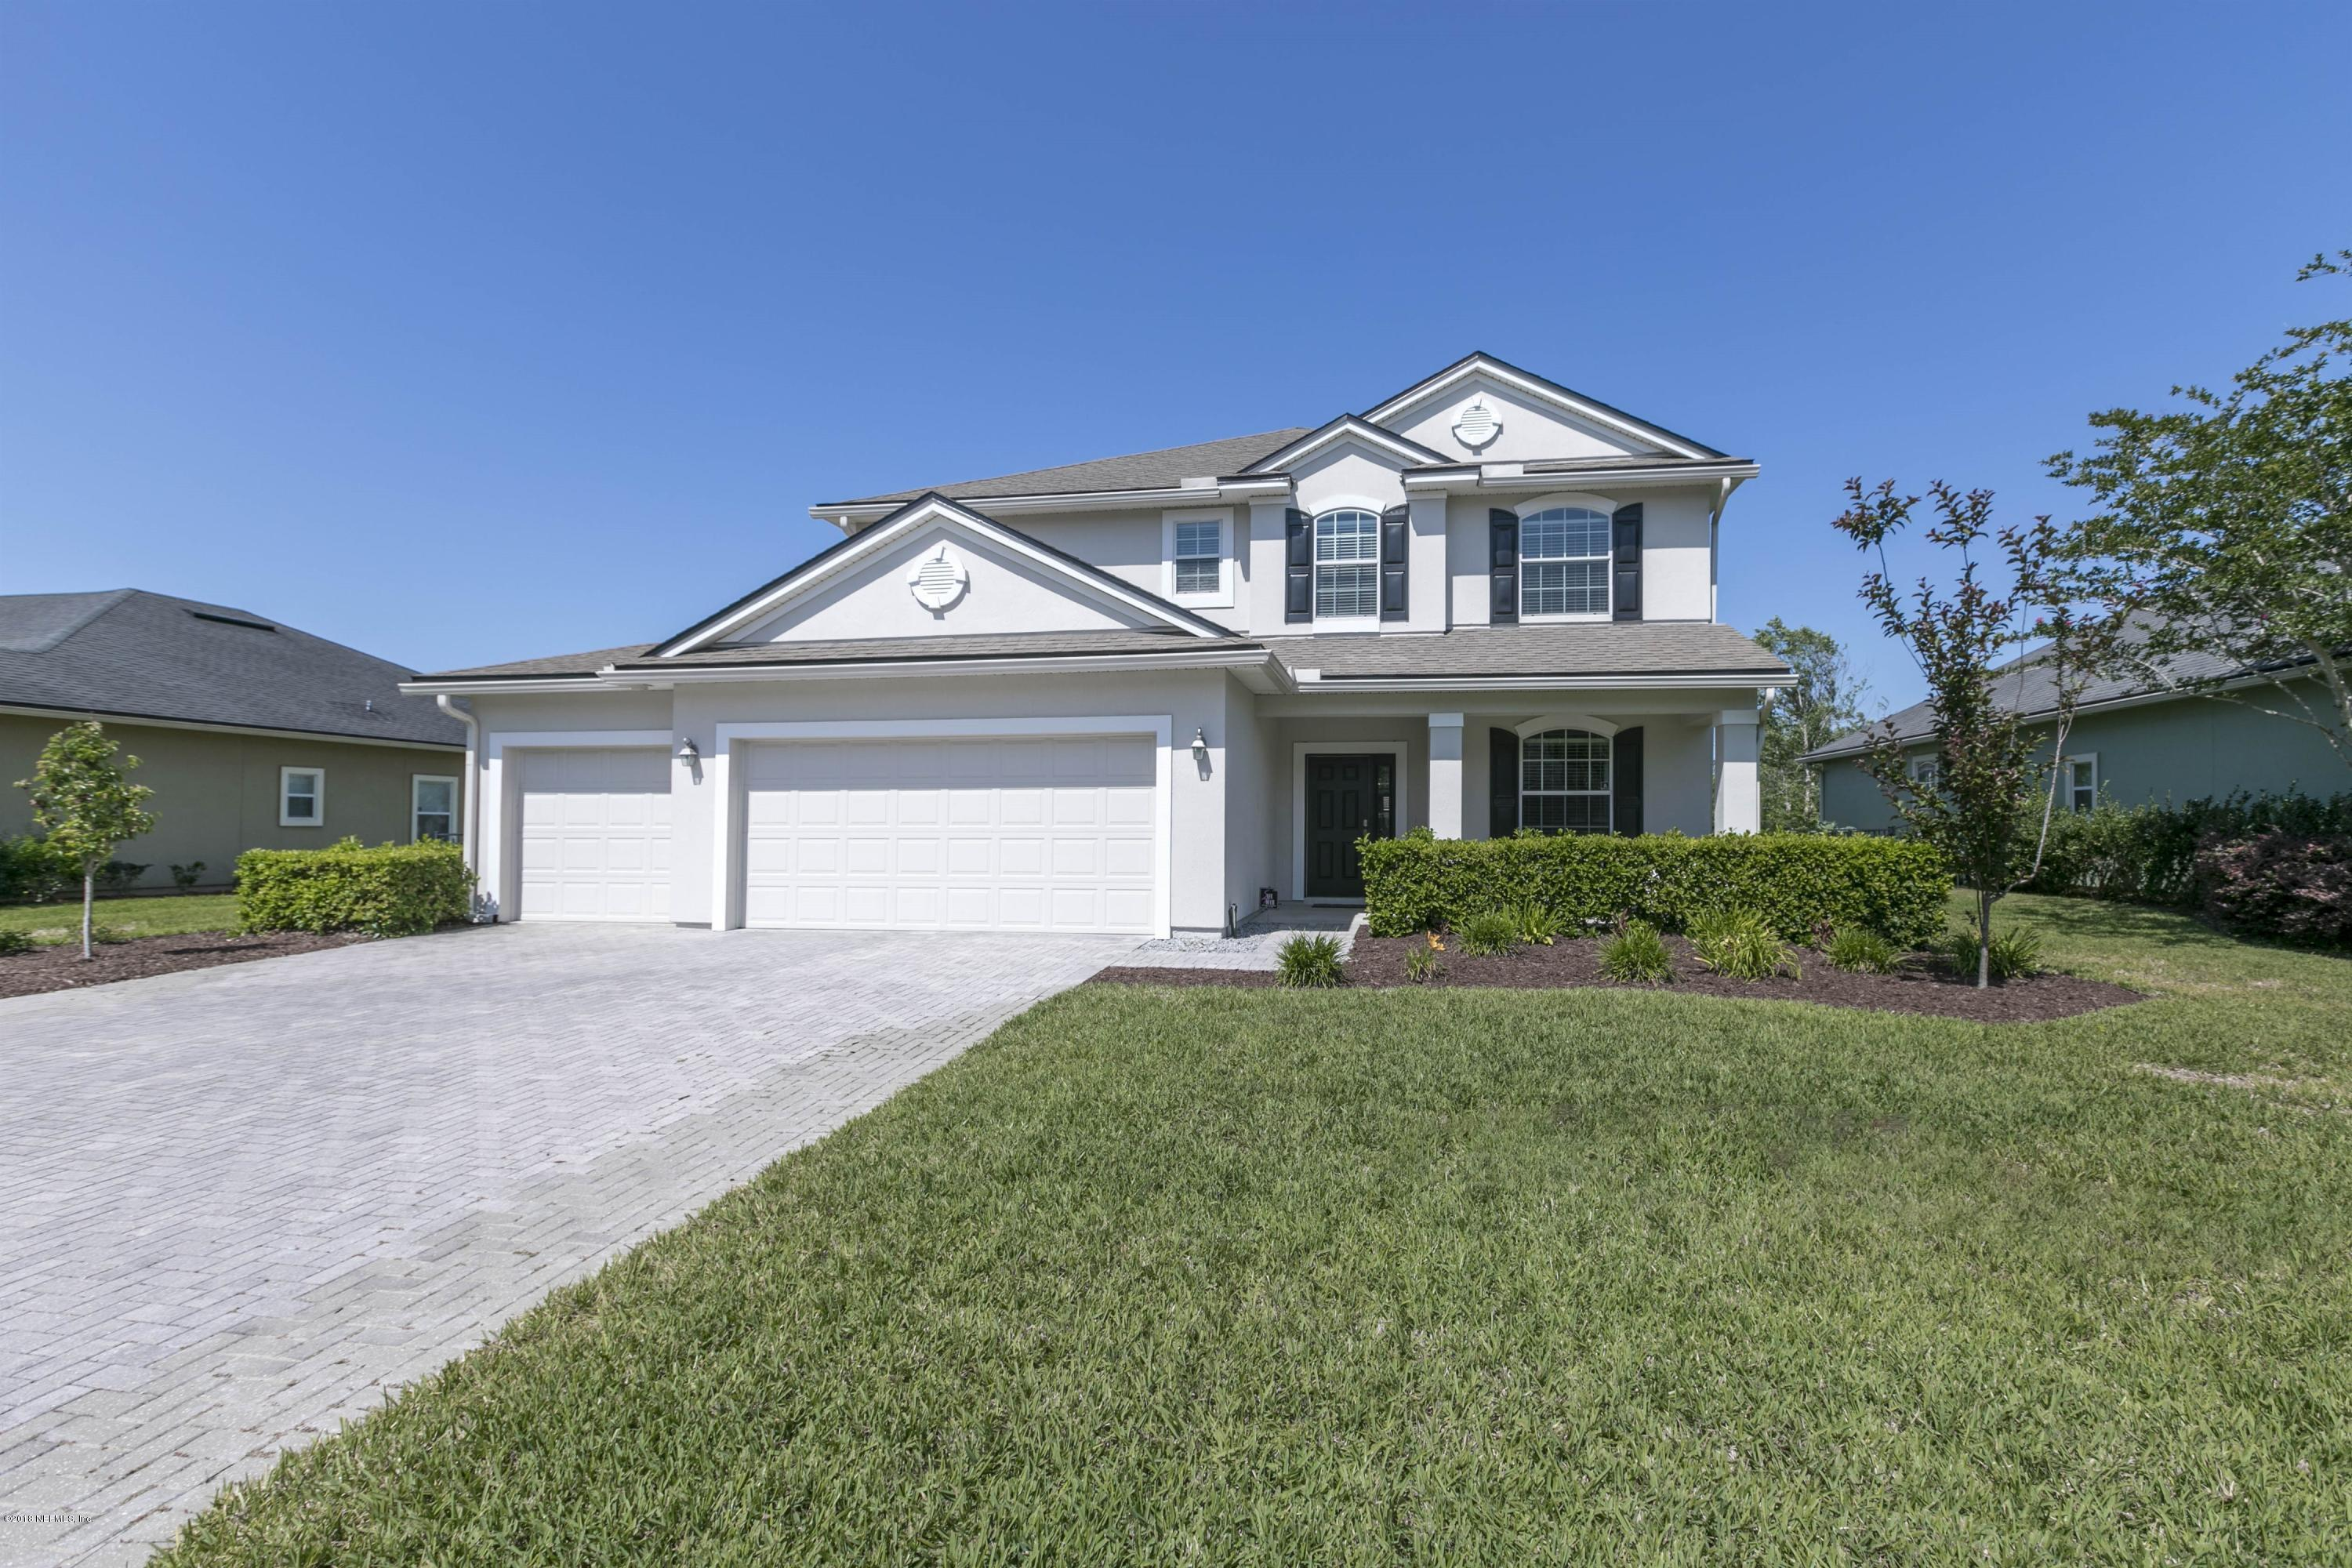 11895 FITCHWOOD, JACKSONVILLE, FLORIDA 32258, 4 Bedrooms Bedrooms, ,2 BathroomsBathrooms,Residential - single family,For sale,FITCHWOOD,934176